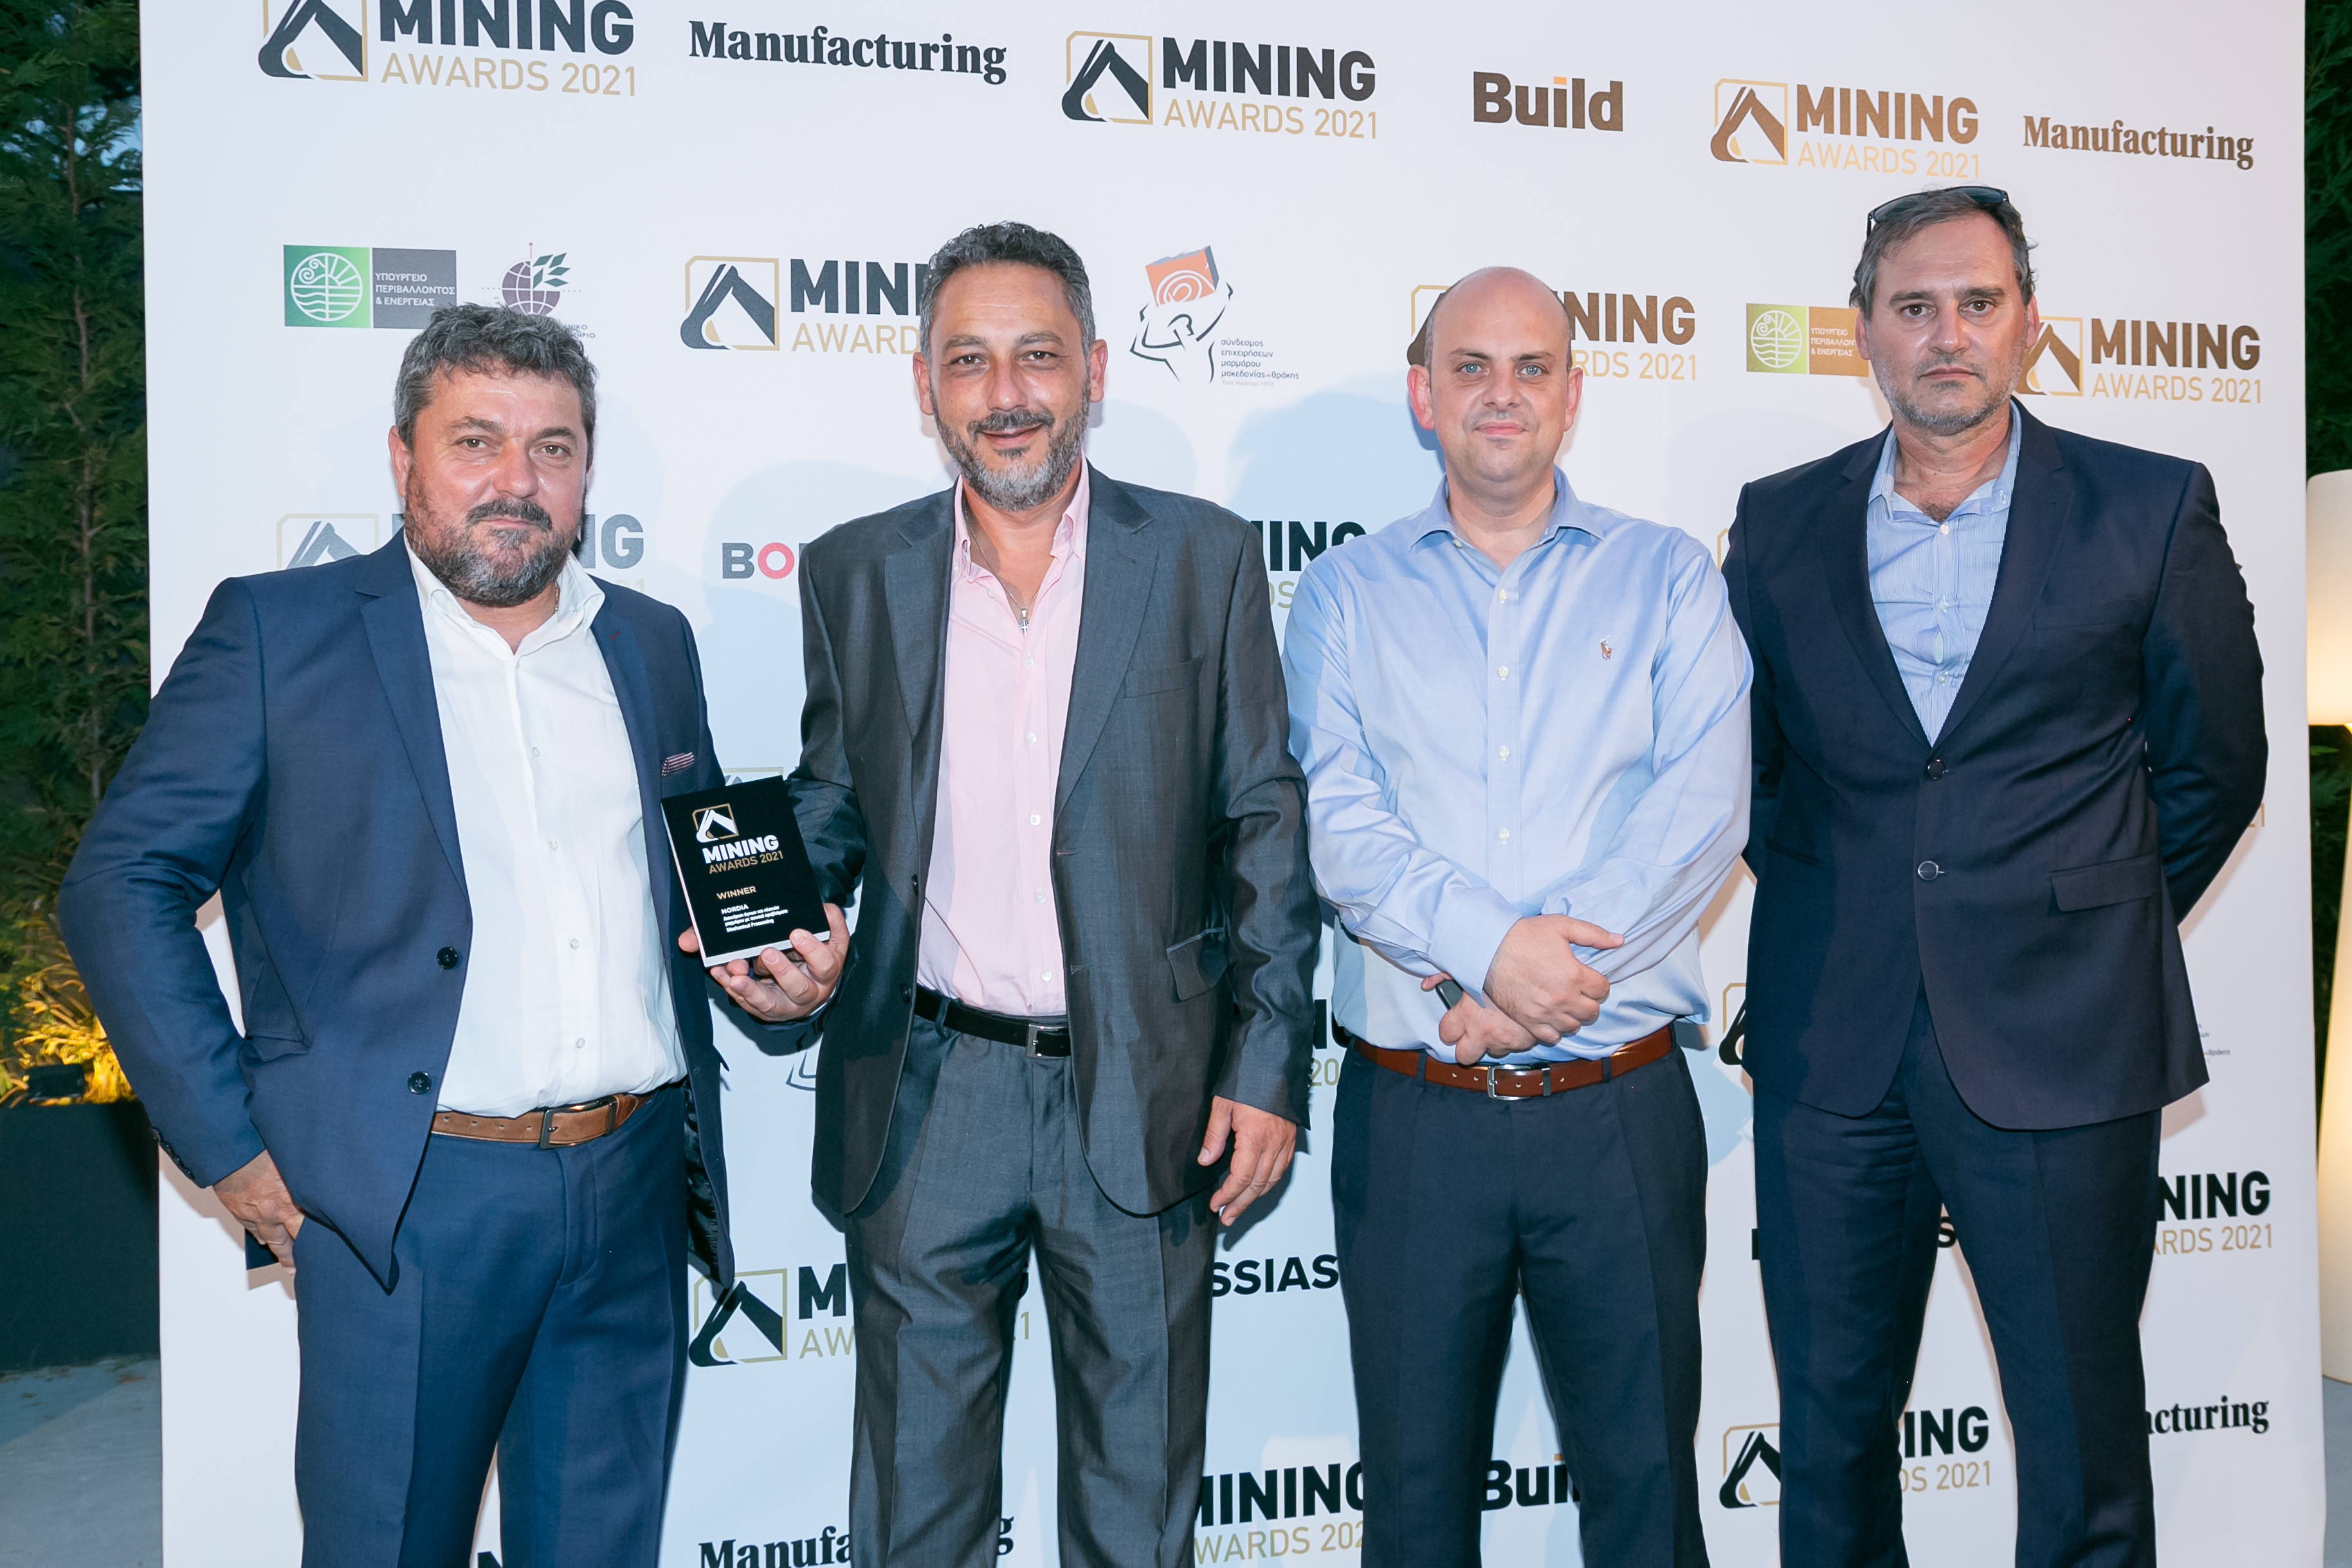 Nordia Marble. One of the big winners of the Mining Awards 2021